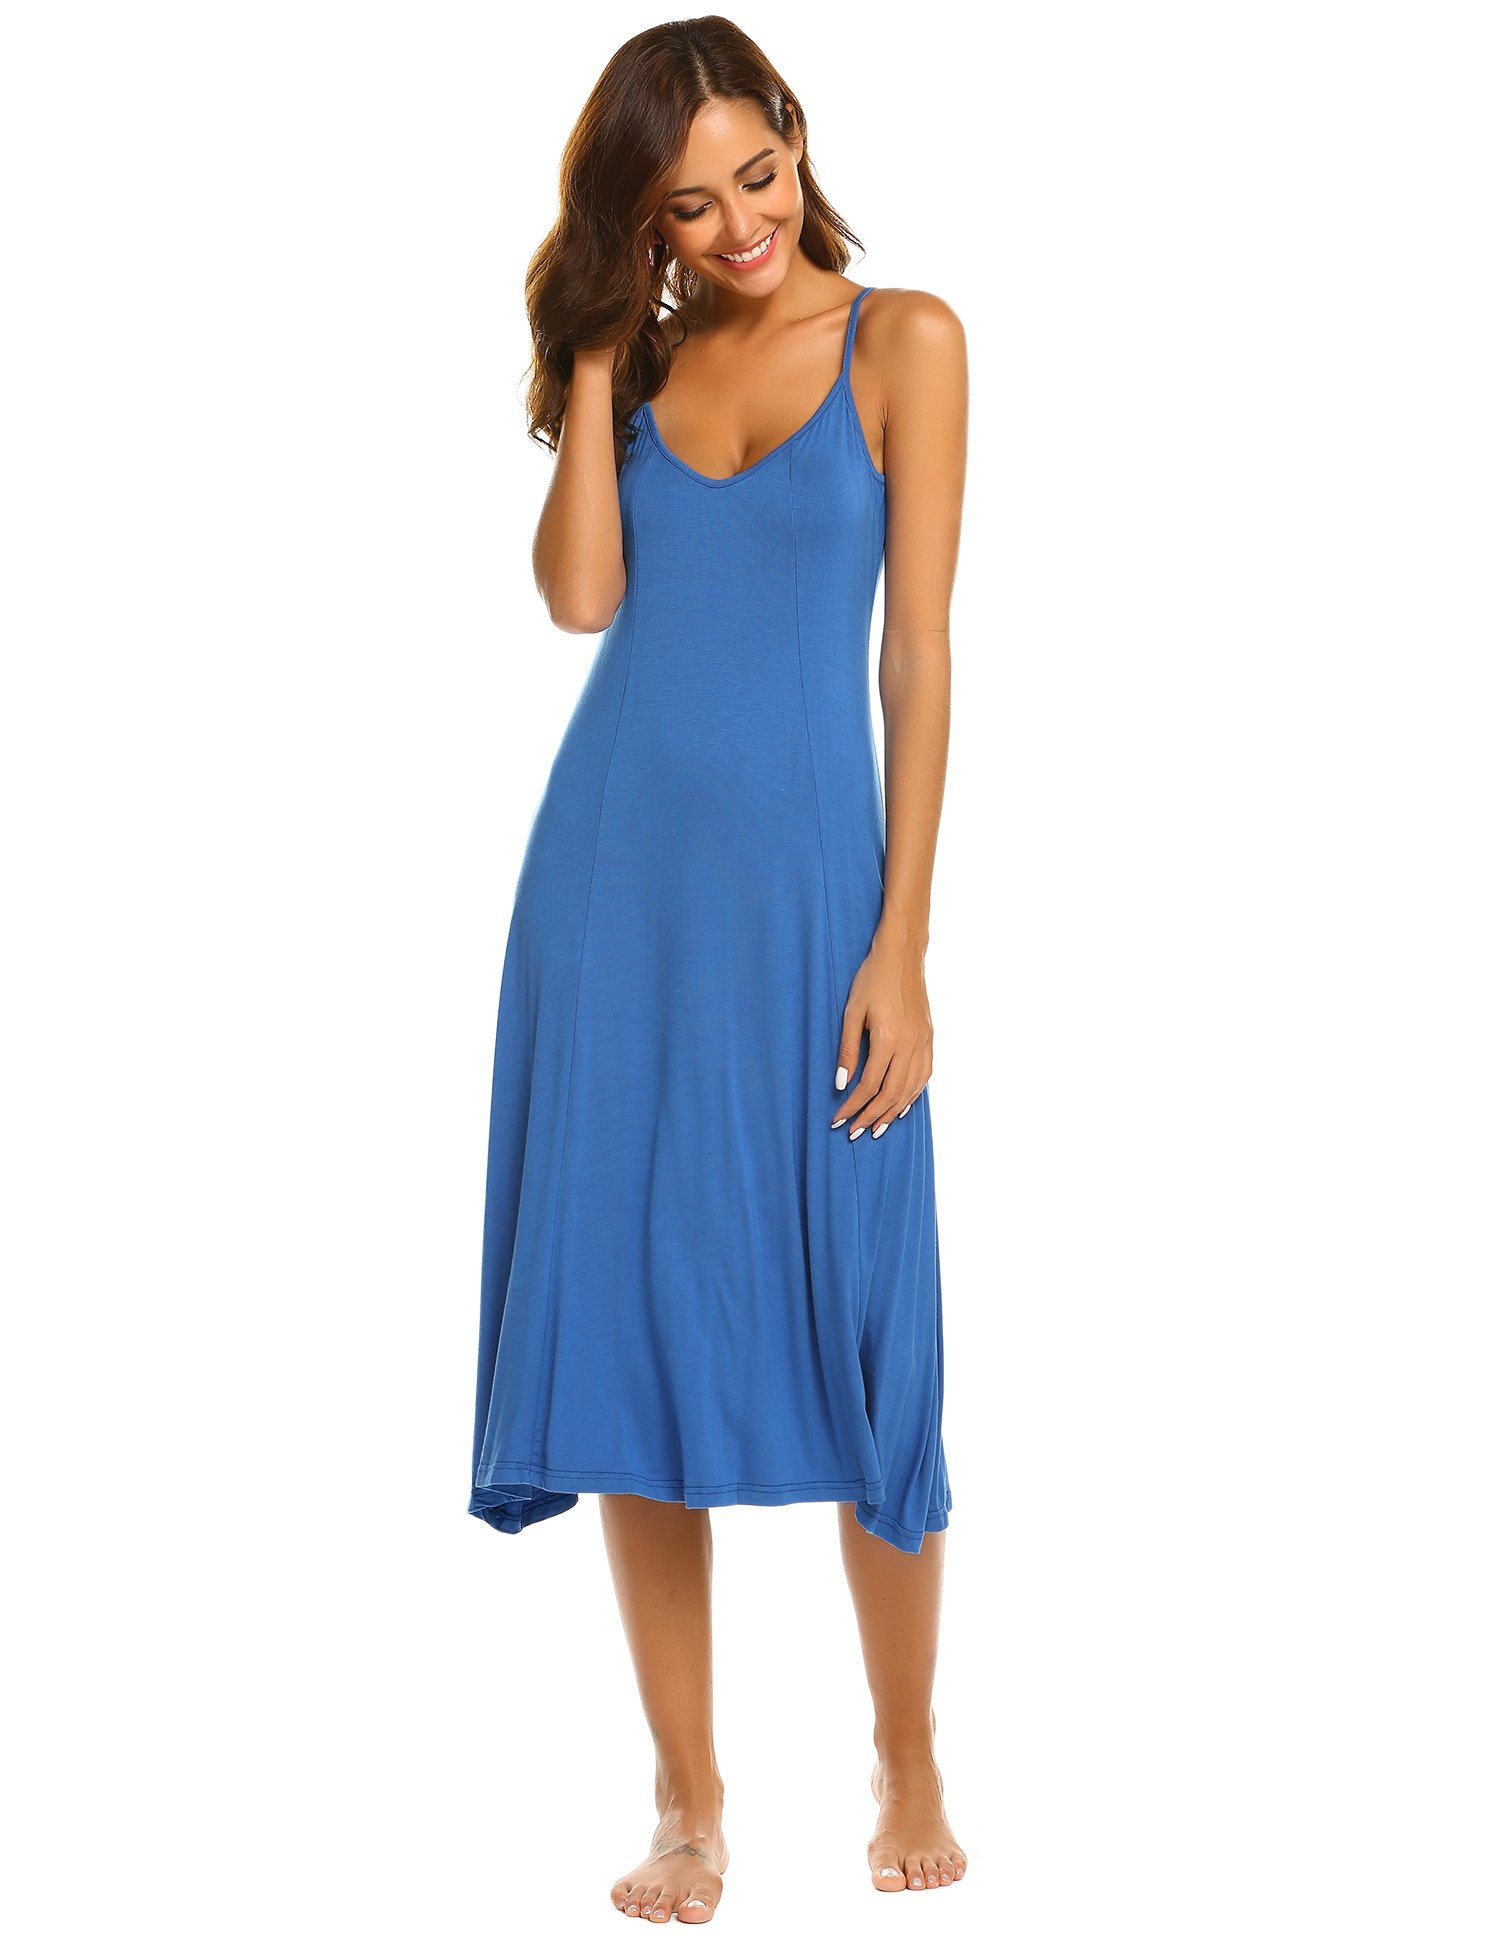 1332c14cdd4 Hotouch Womens V Neck Fitted A Line Midi Cami Spaghetti Strap Sexy Dress  Royal Blue XL